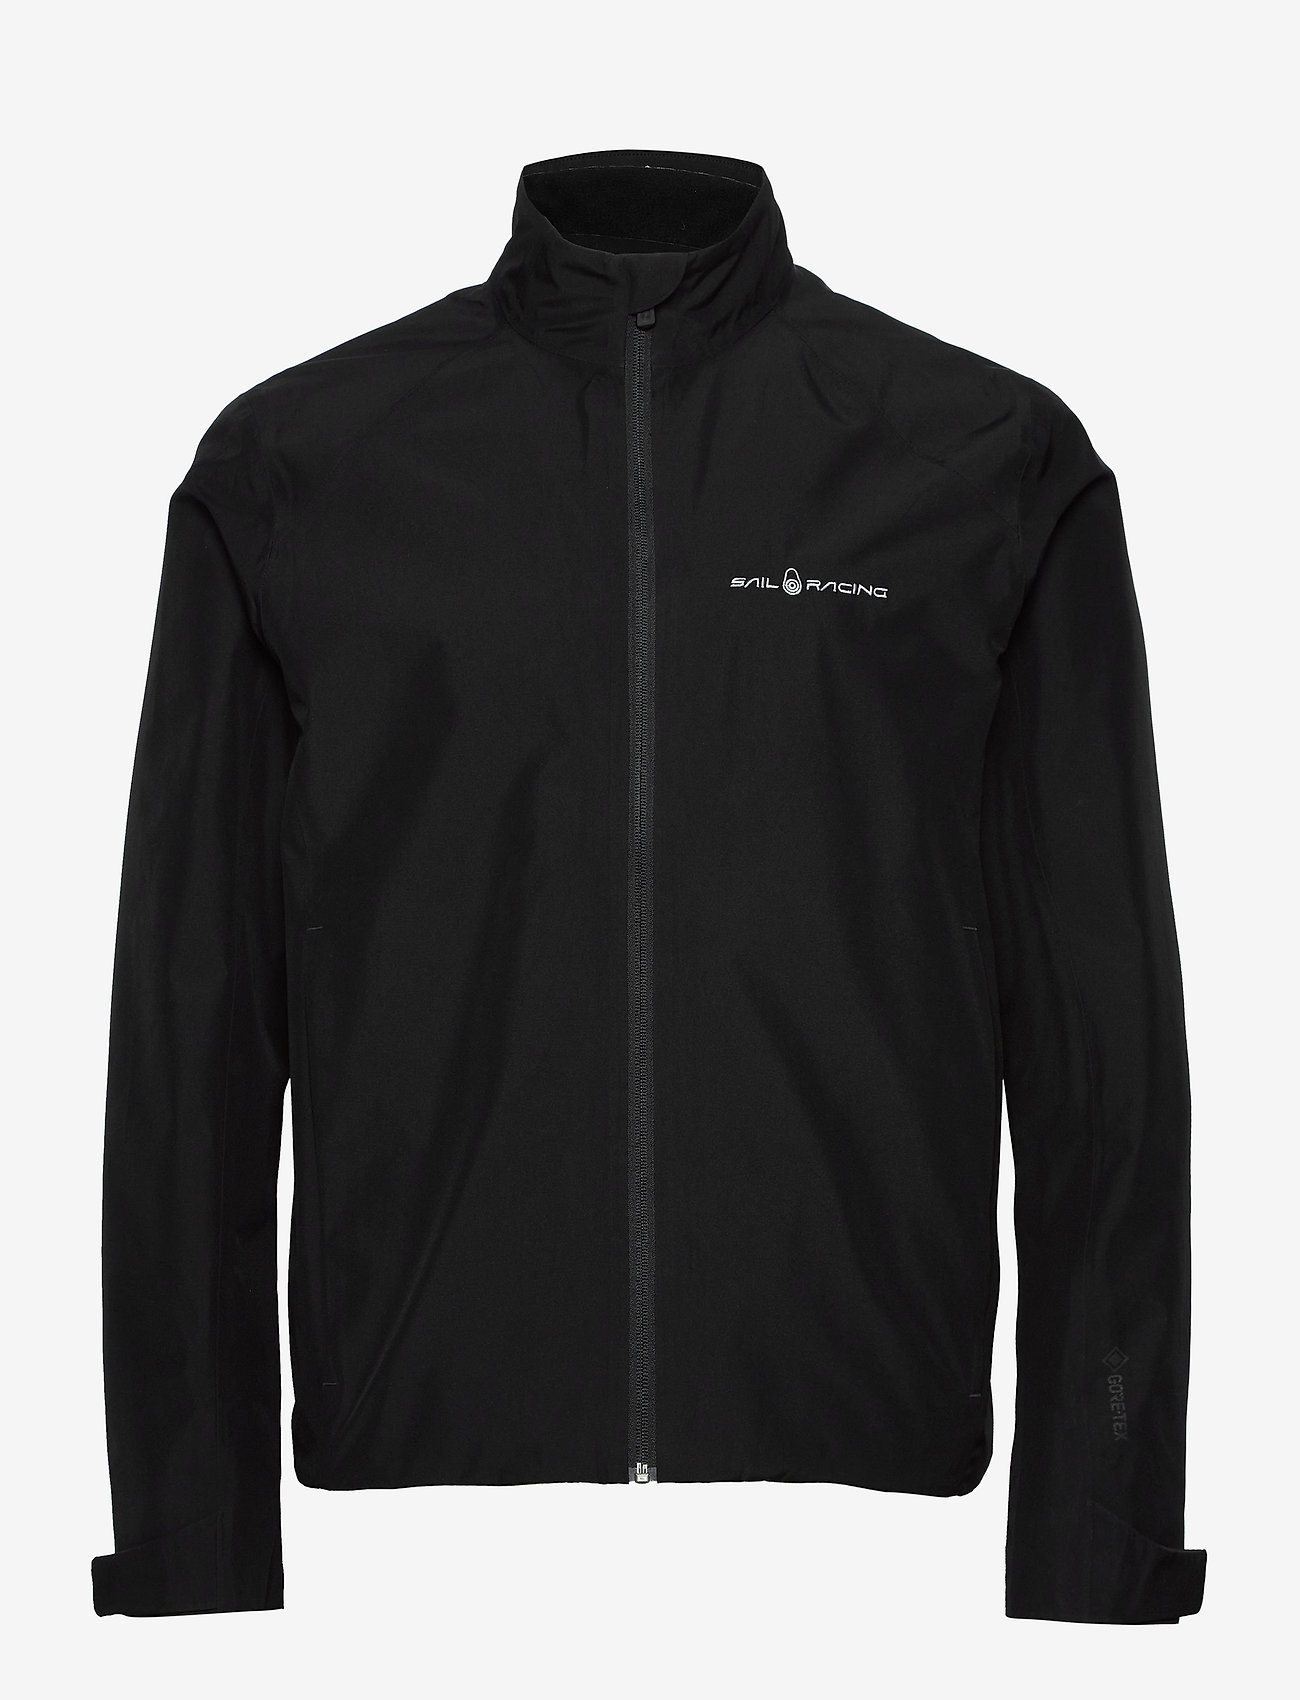 Sail Racing - SPRAY GTX JACKET - trainingsjacken - carbon - 1